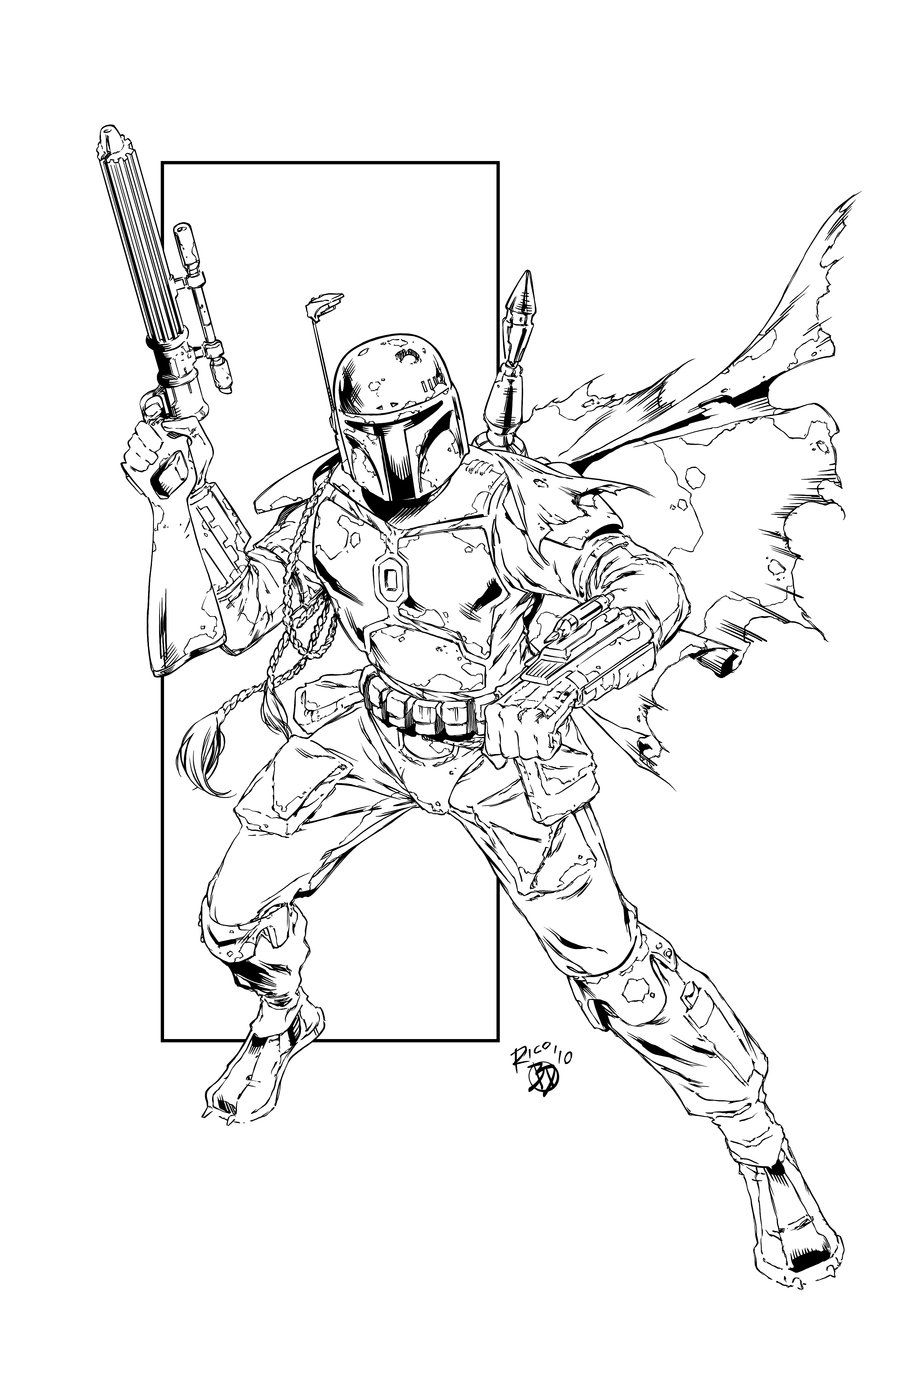 Boba Fett By Bdstevens On Deviantart Star Wars Jango Fett Star